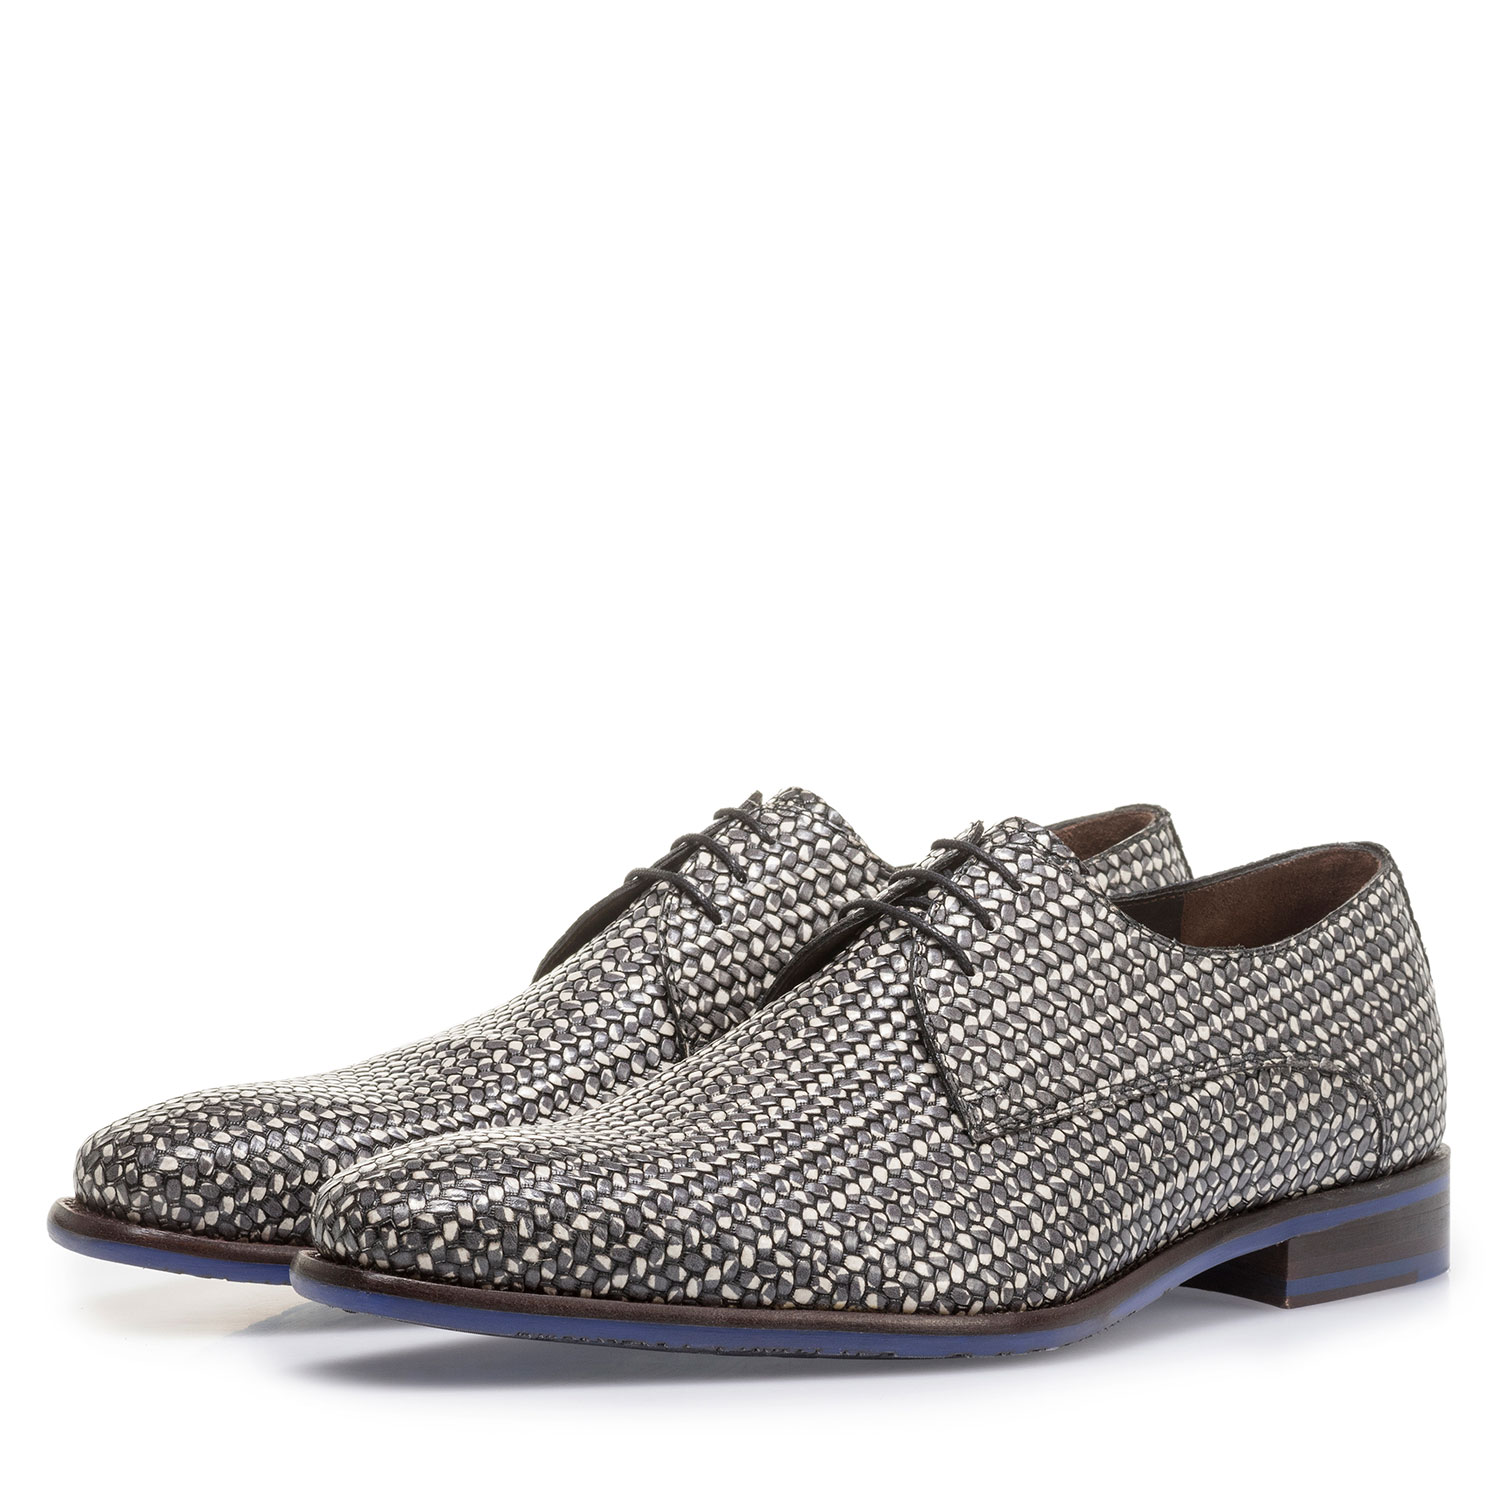 18159/13 - Dark grey lace shoe with white print